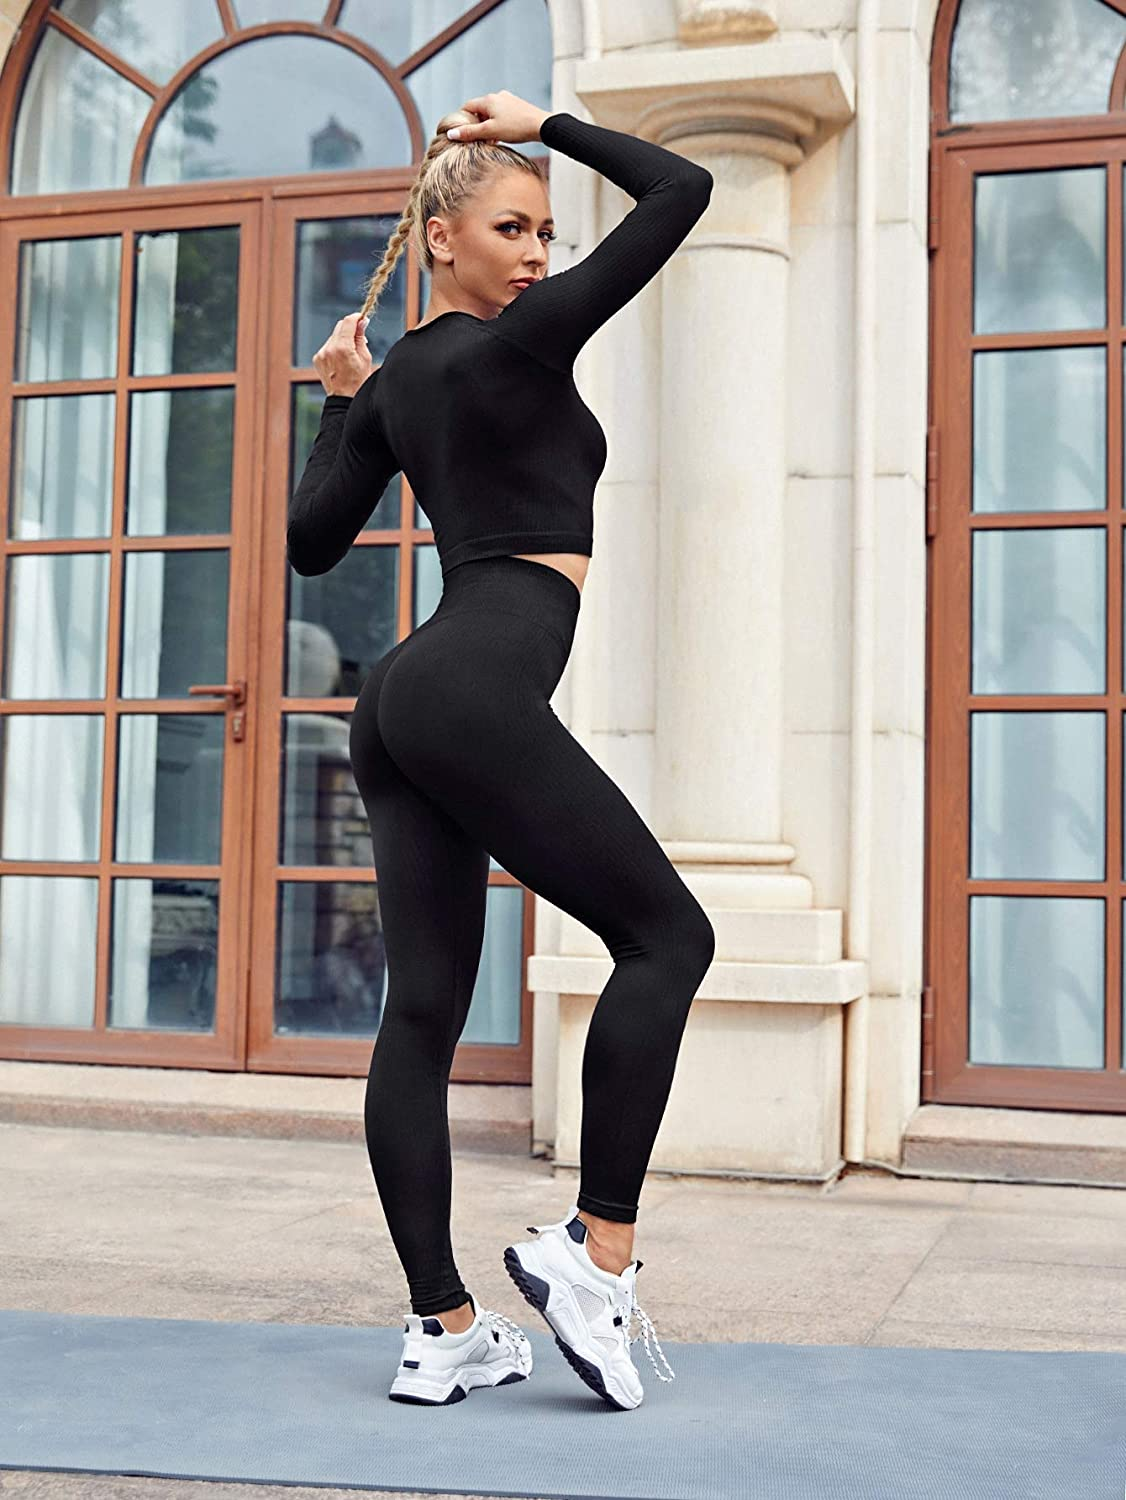 MakeMeChic Womens Two Piece Yoga Gym Crop Top and Sports Leggings